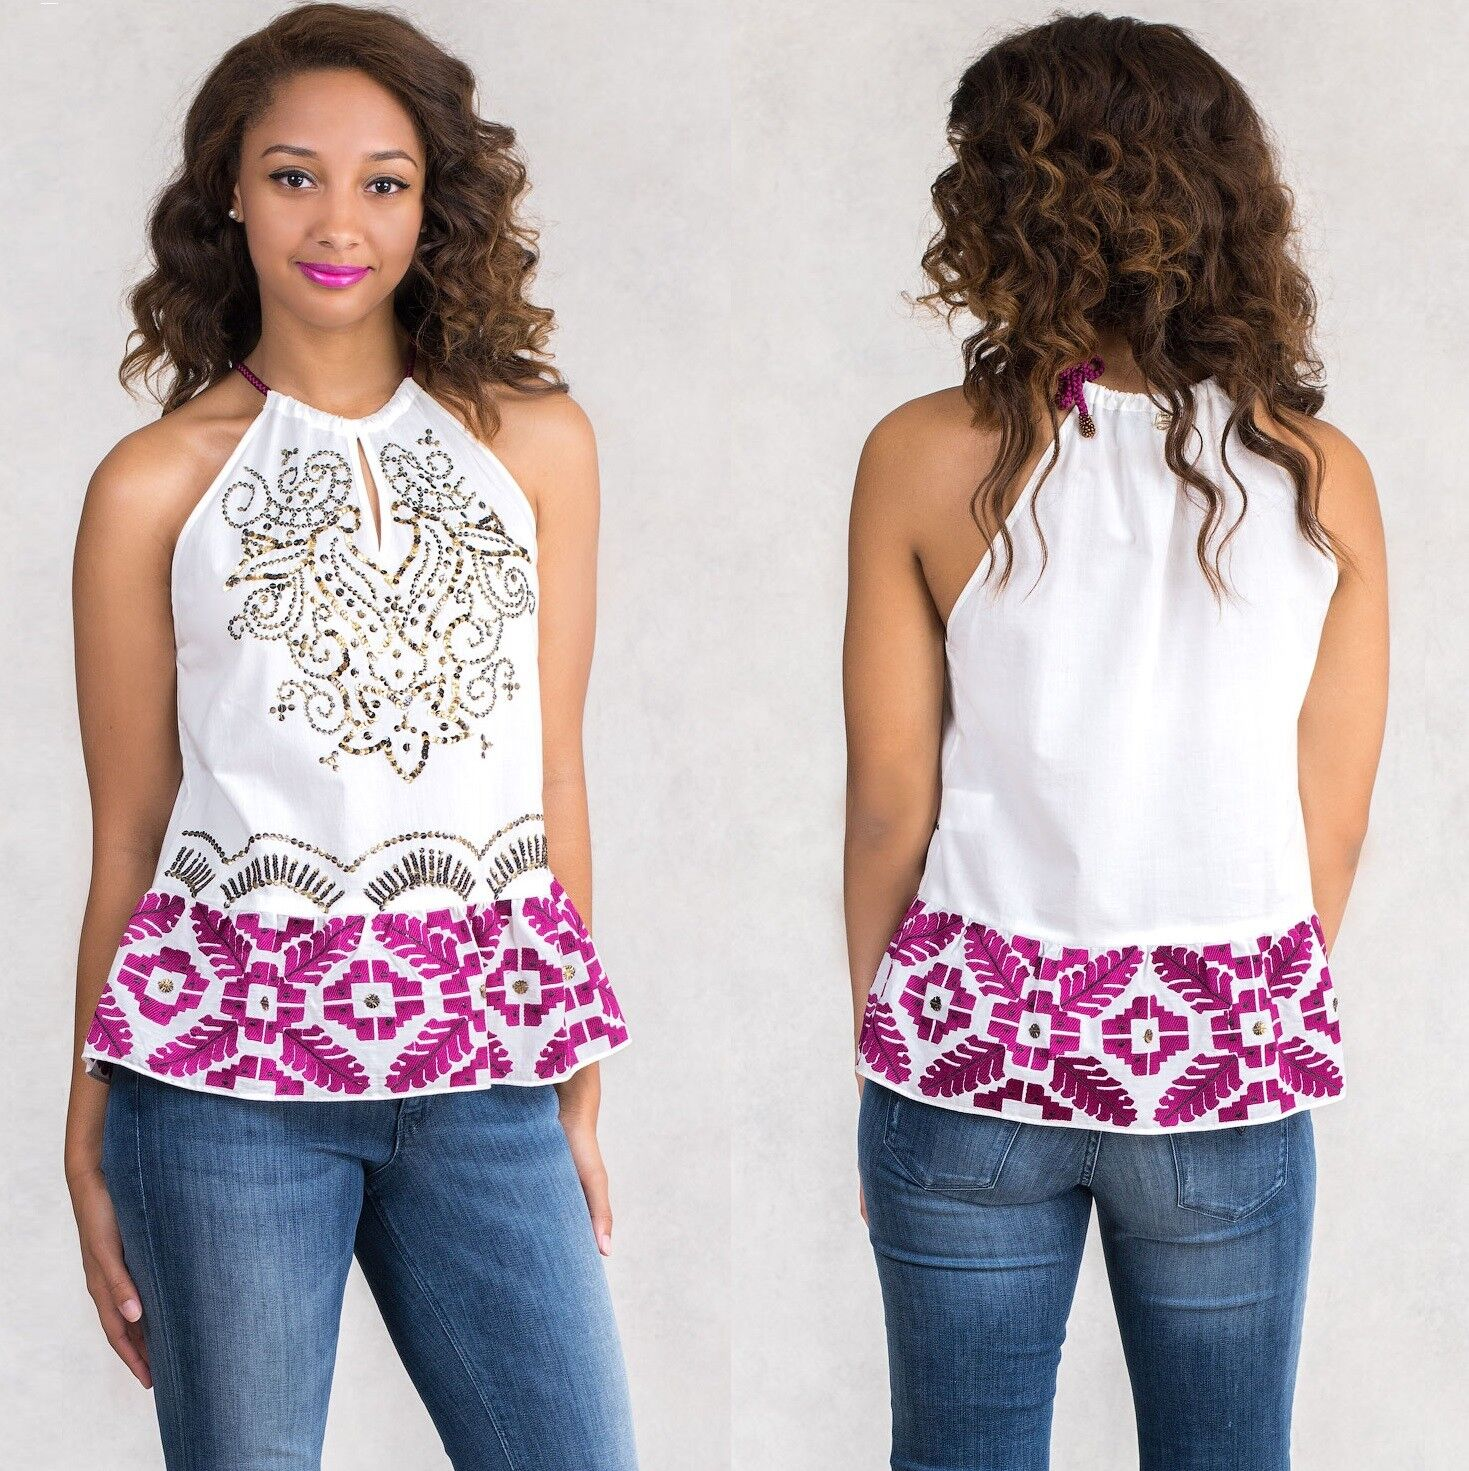 NWT  234 SISTE'S Italian Sequin Embroidery Women Cotton Top Blouse Size S 8 10